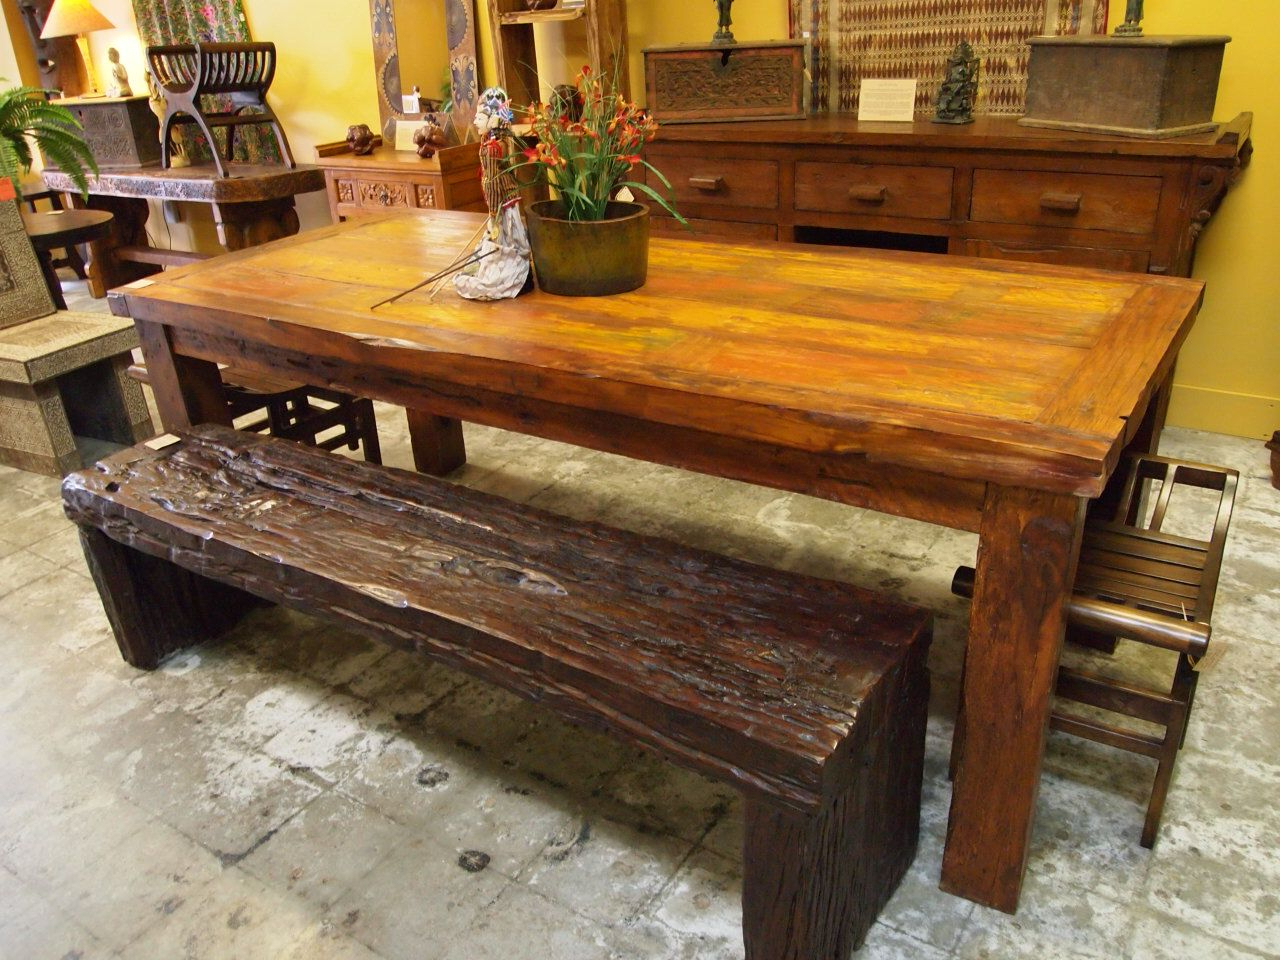 Recent Iron Wood Dining Tables Intended For Reclaimed Wood Dining Table & Rustic Ironwood Bench (View 4 of 30)